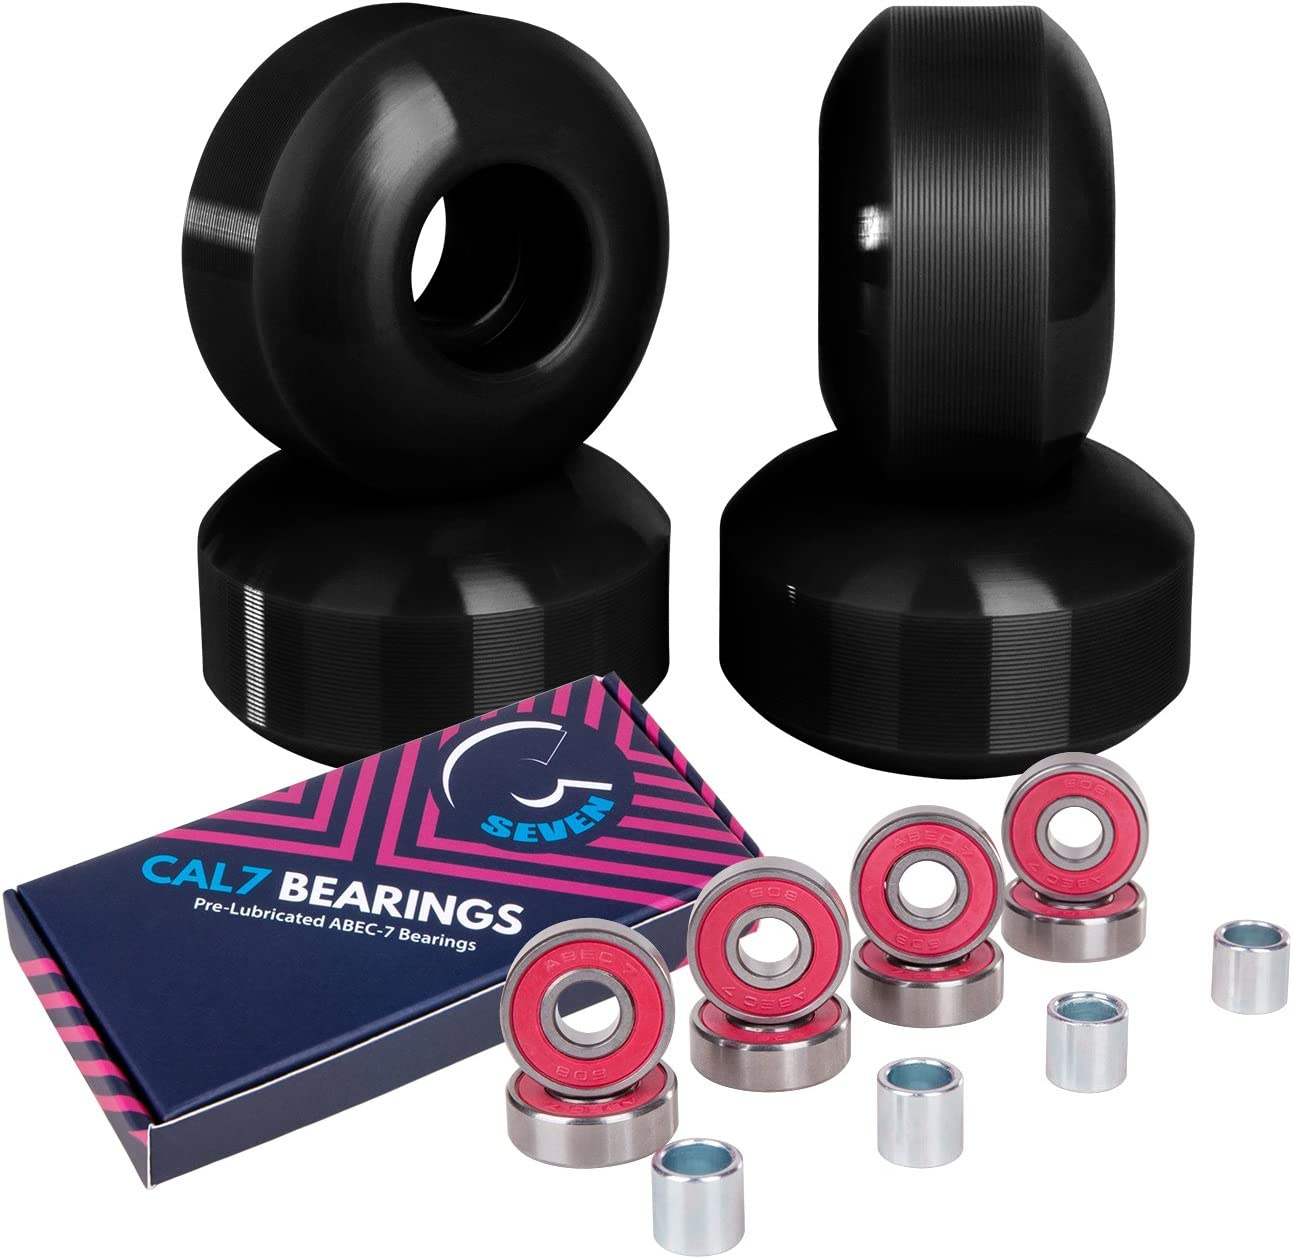 Cal 7 52mm Skateboard Wheels with Bearings